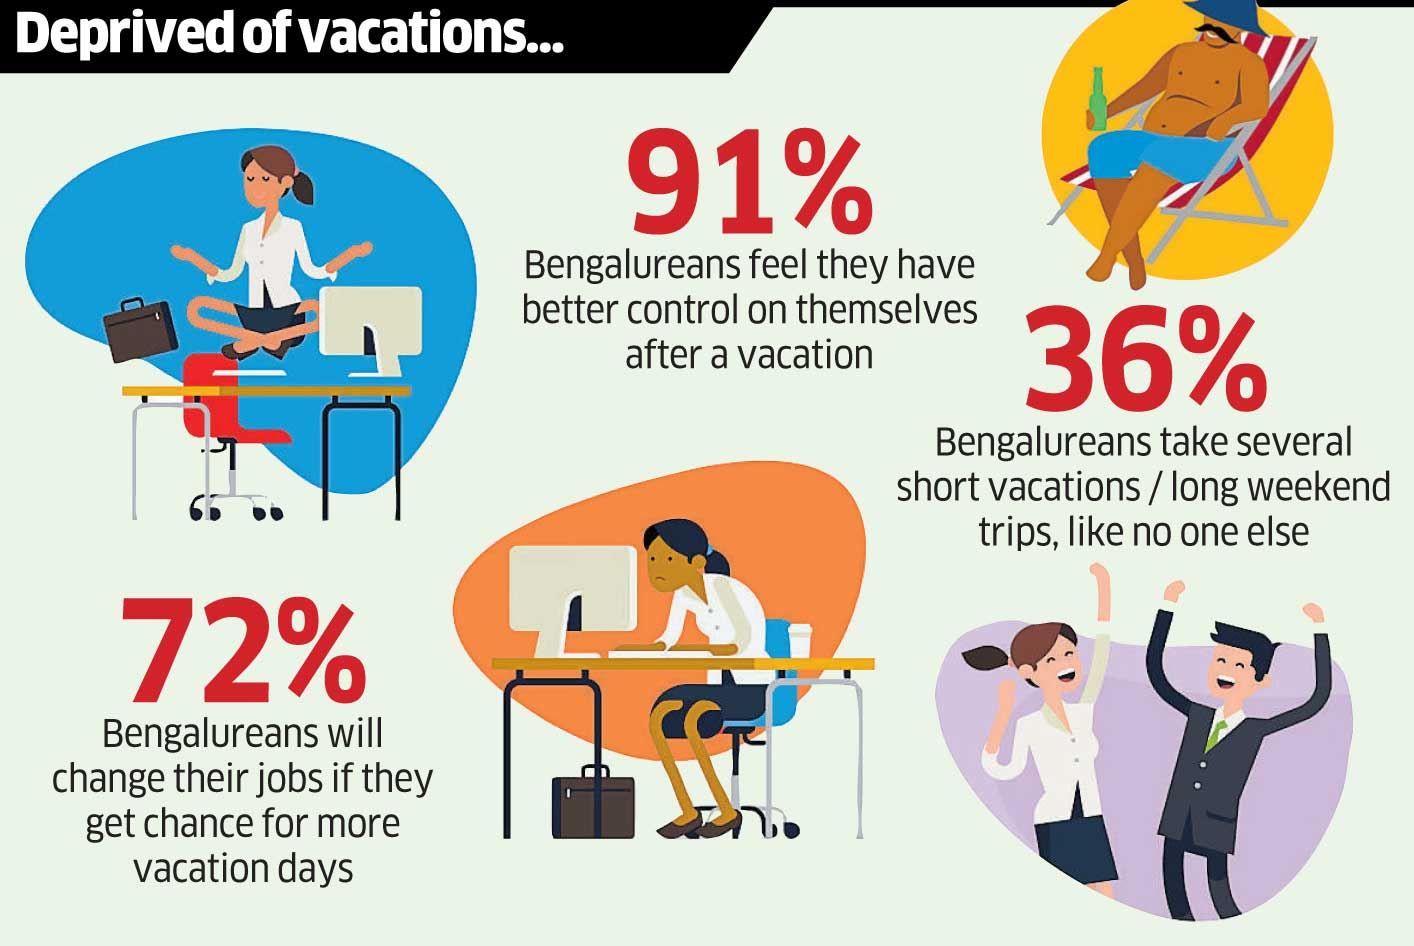 Most Bengalureans get only 1- 10 days of vacations days andmajorityof them take fewer vacations (51%). Forty per cent feel that they deserve six to 10 more vacation days. (DH inforgraphics)